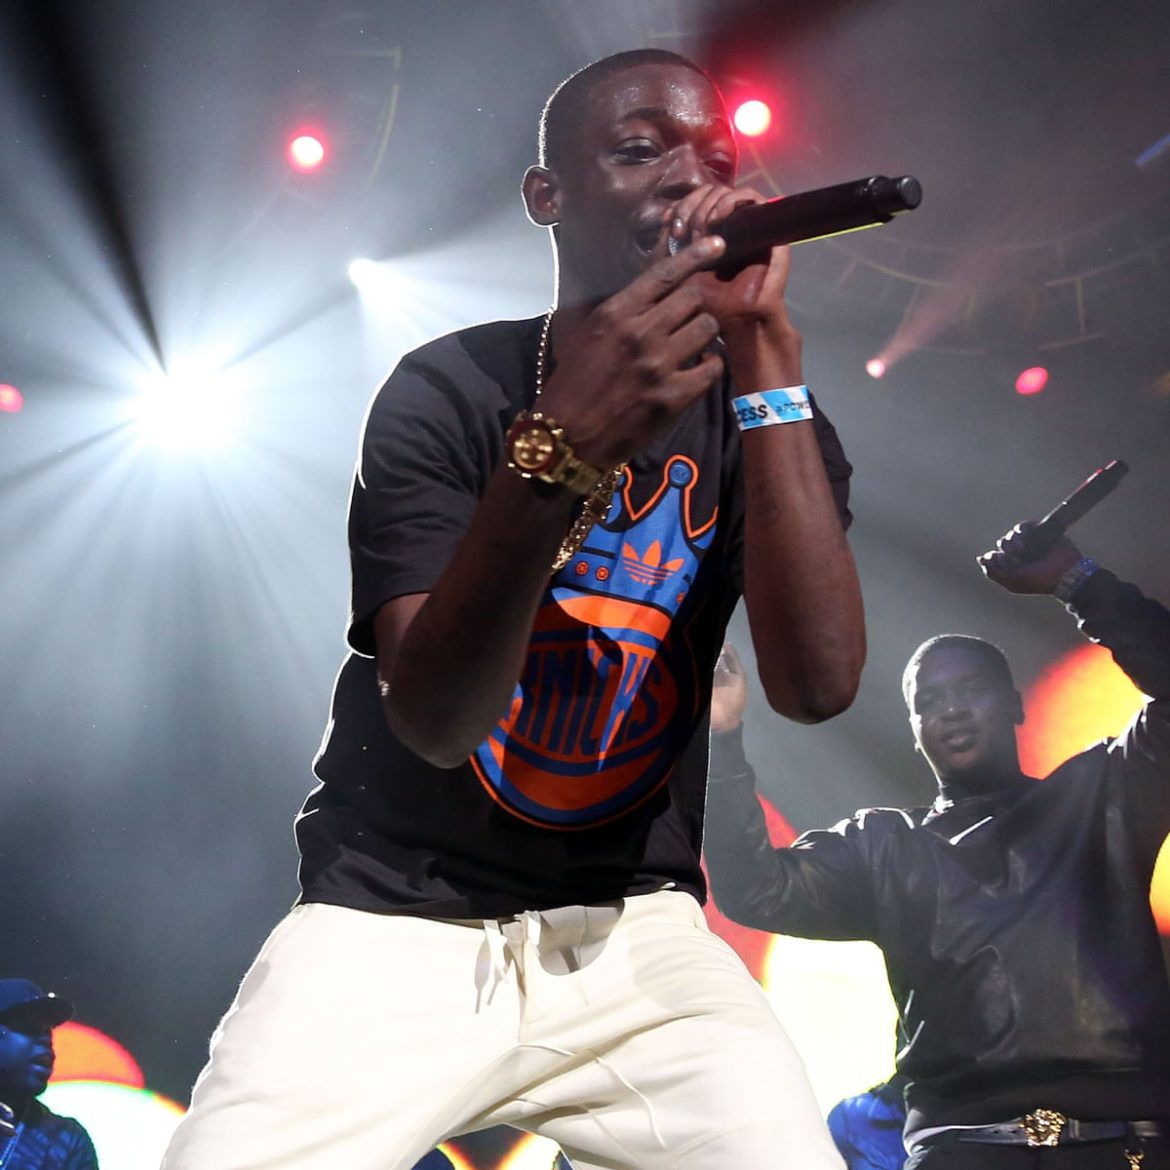 When will Bobby Shmurda be released from jail? What is her net worth?